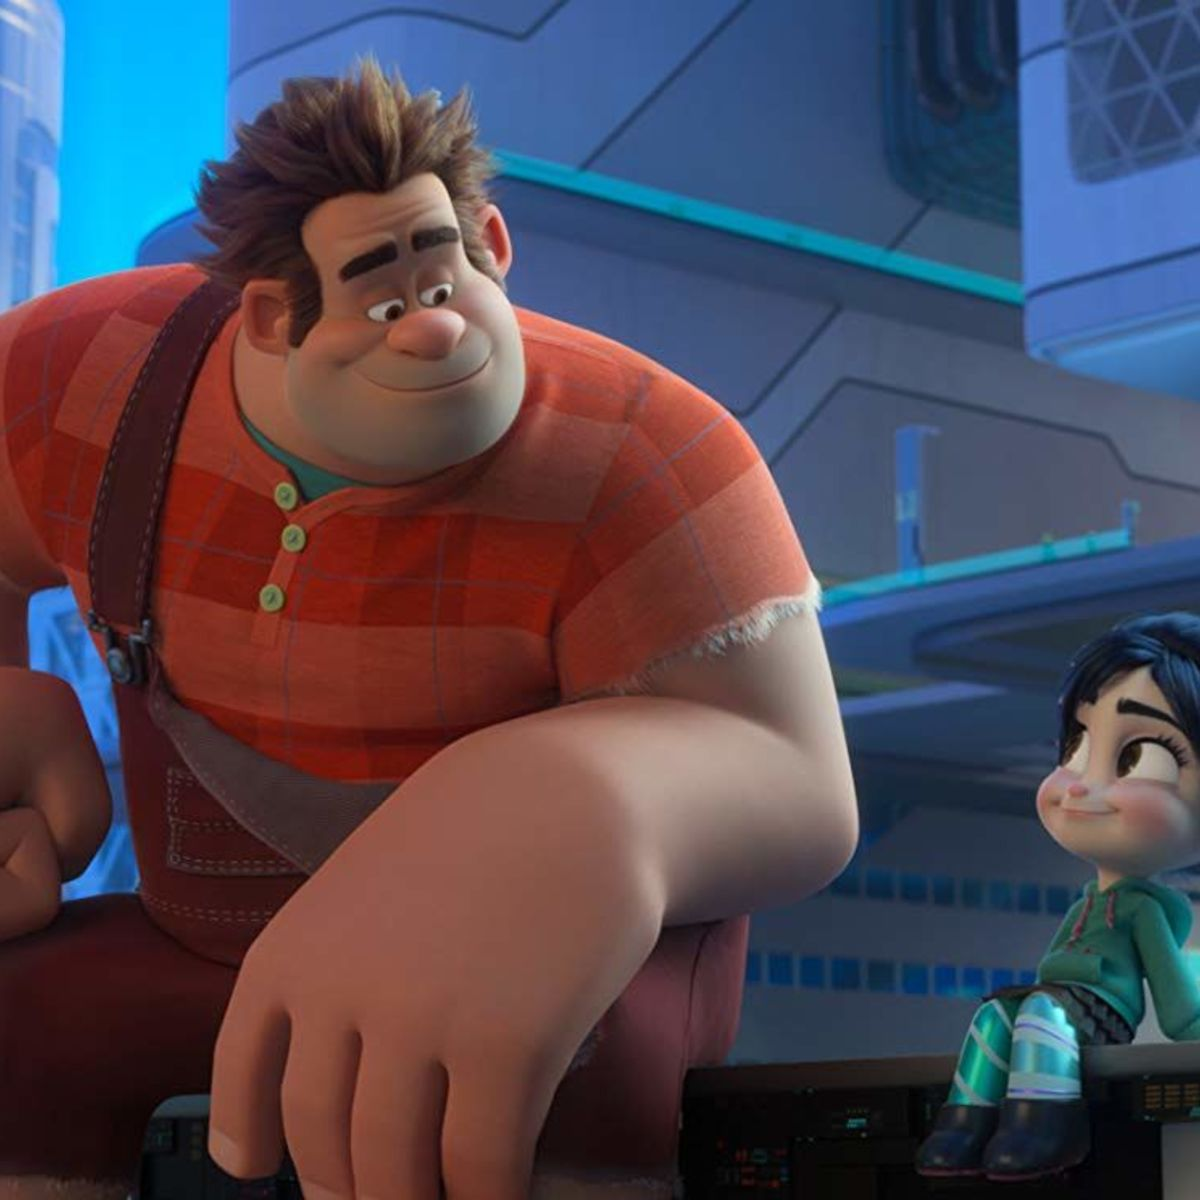 Ralph Breaks the Internet also breaks the Thanksgiving box office